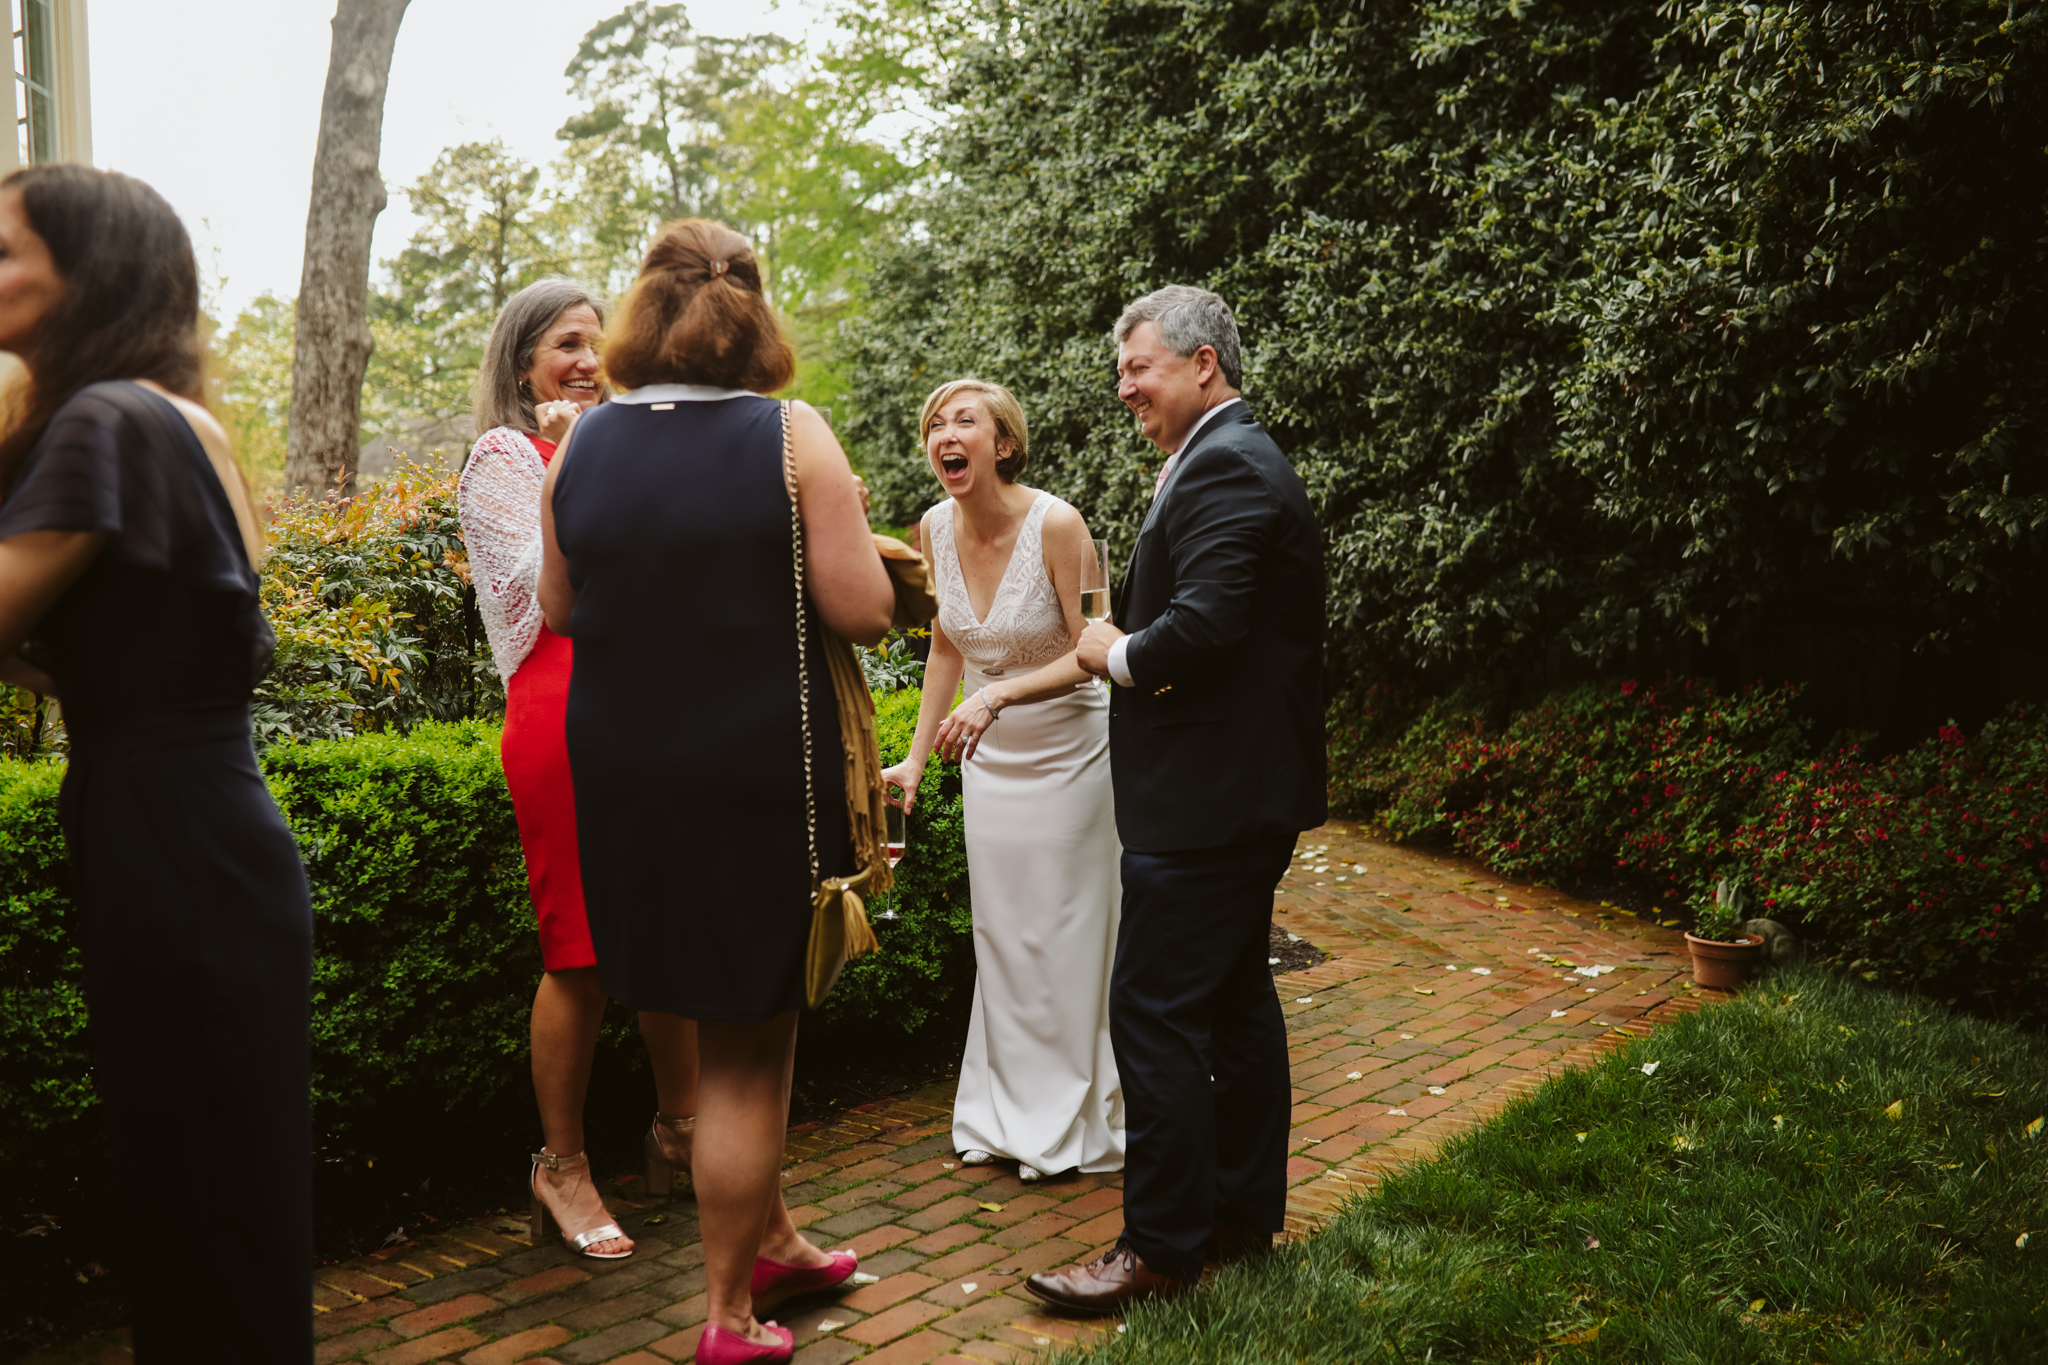 cook_wedding_richmond_virginia_rebecca_burt_photography-87.jpg